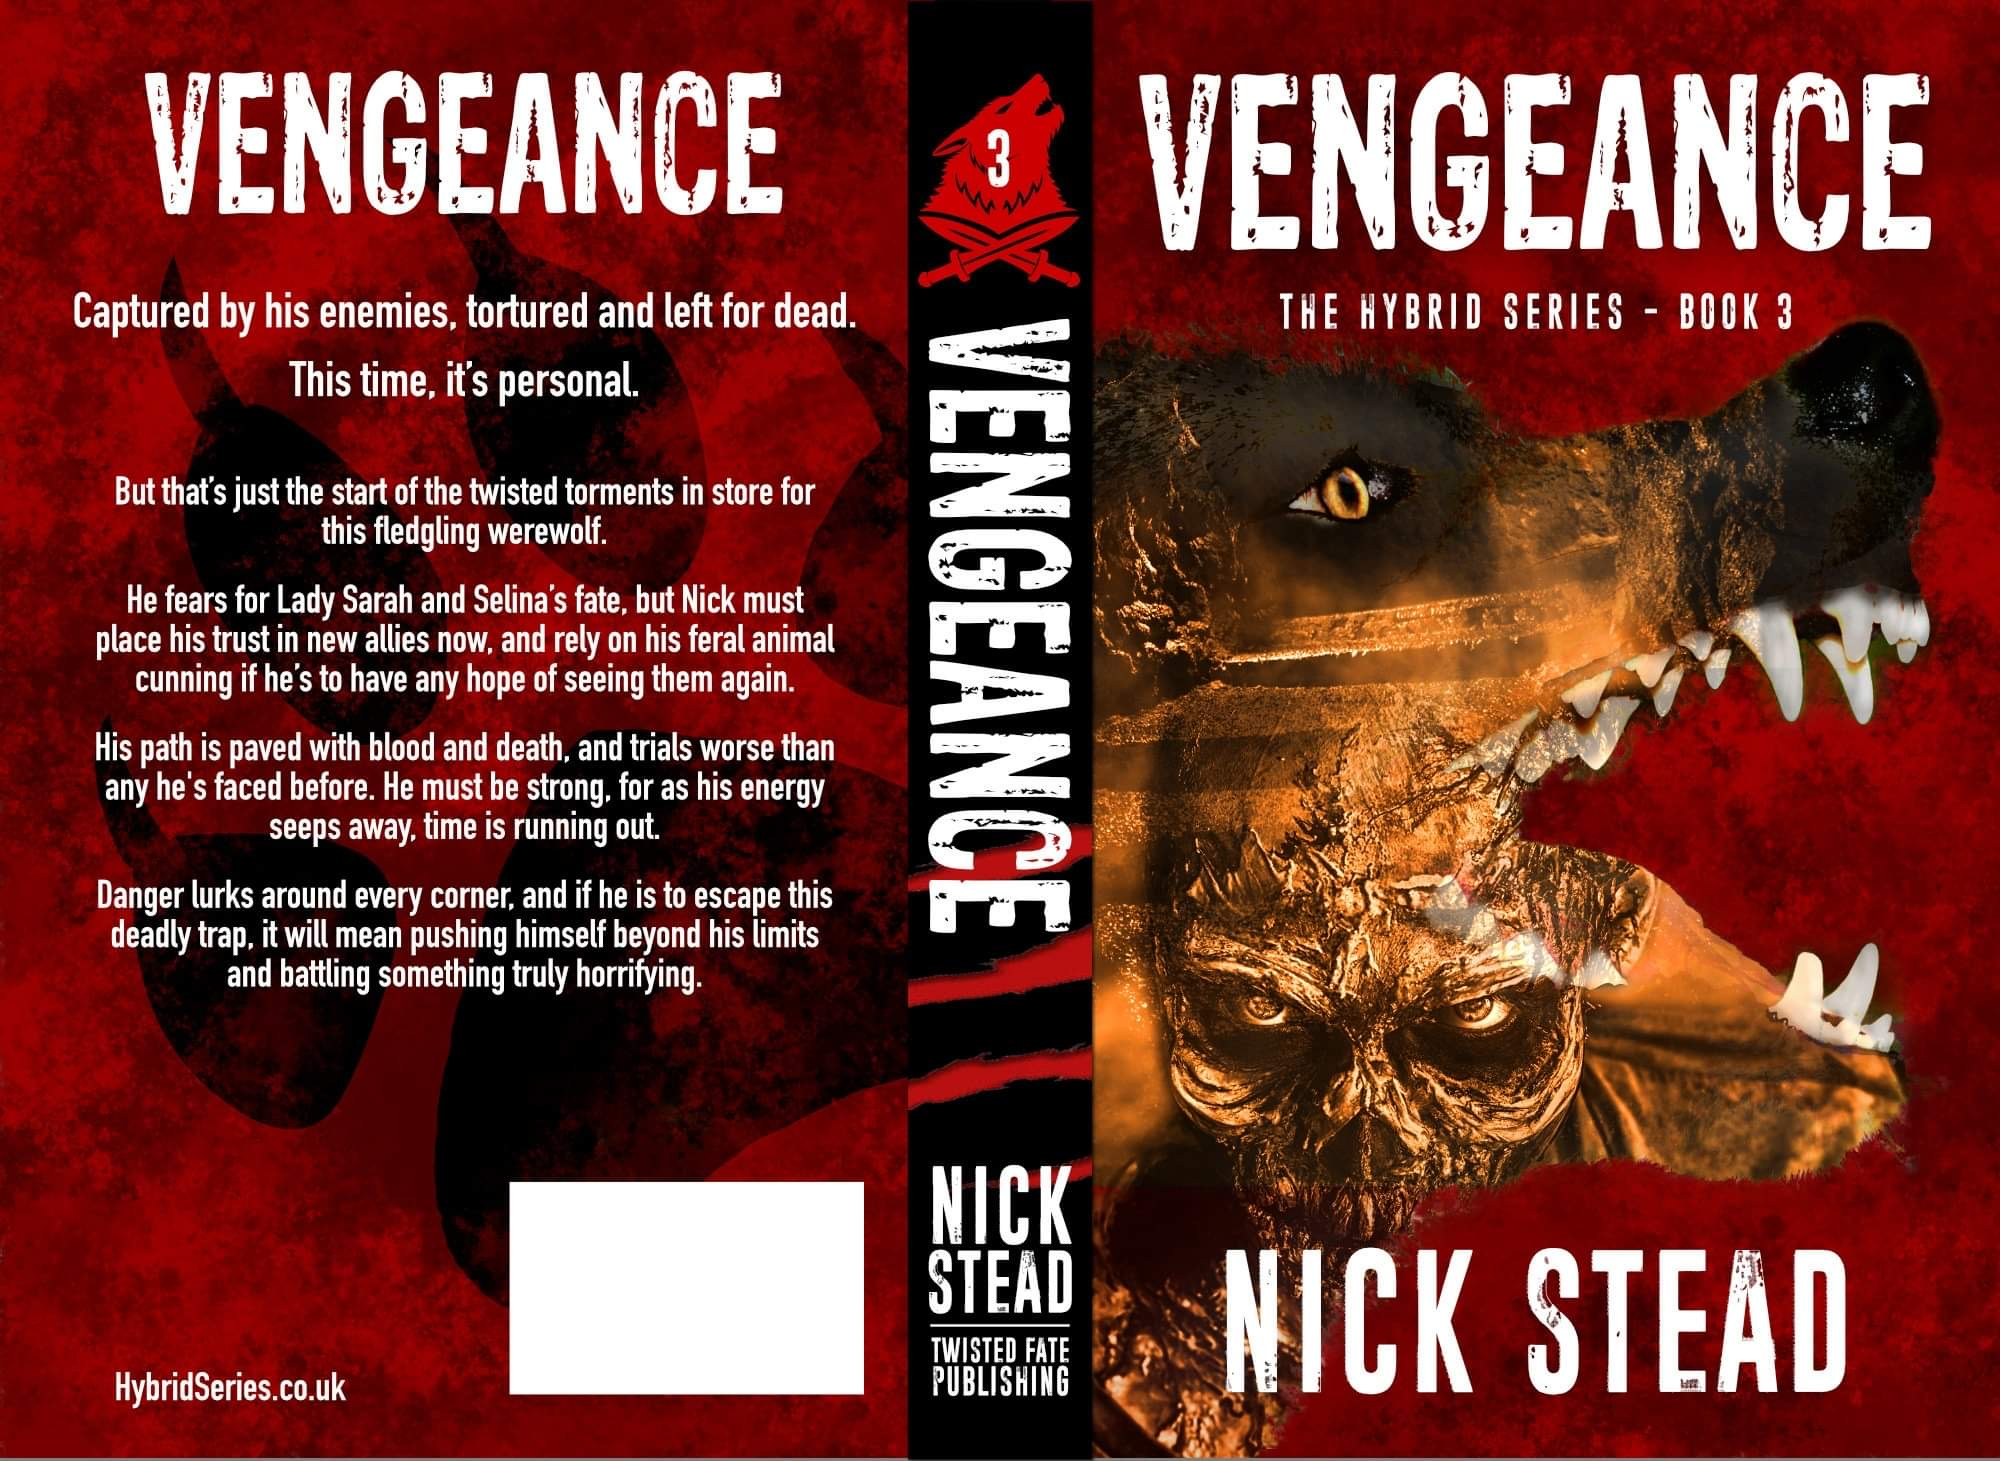 Twisted Fate Publishing to release a revised edition of Vengeance from horror author Nick Stead